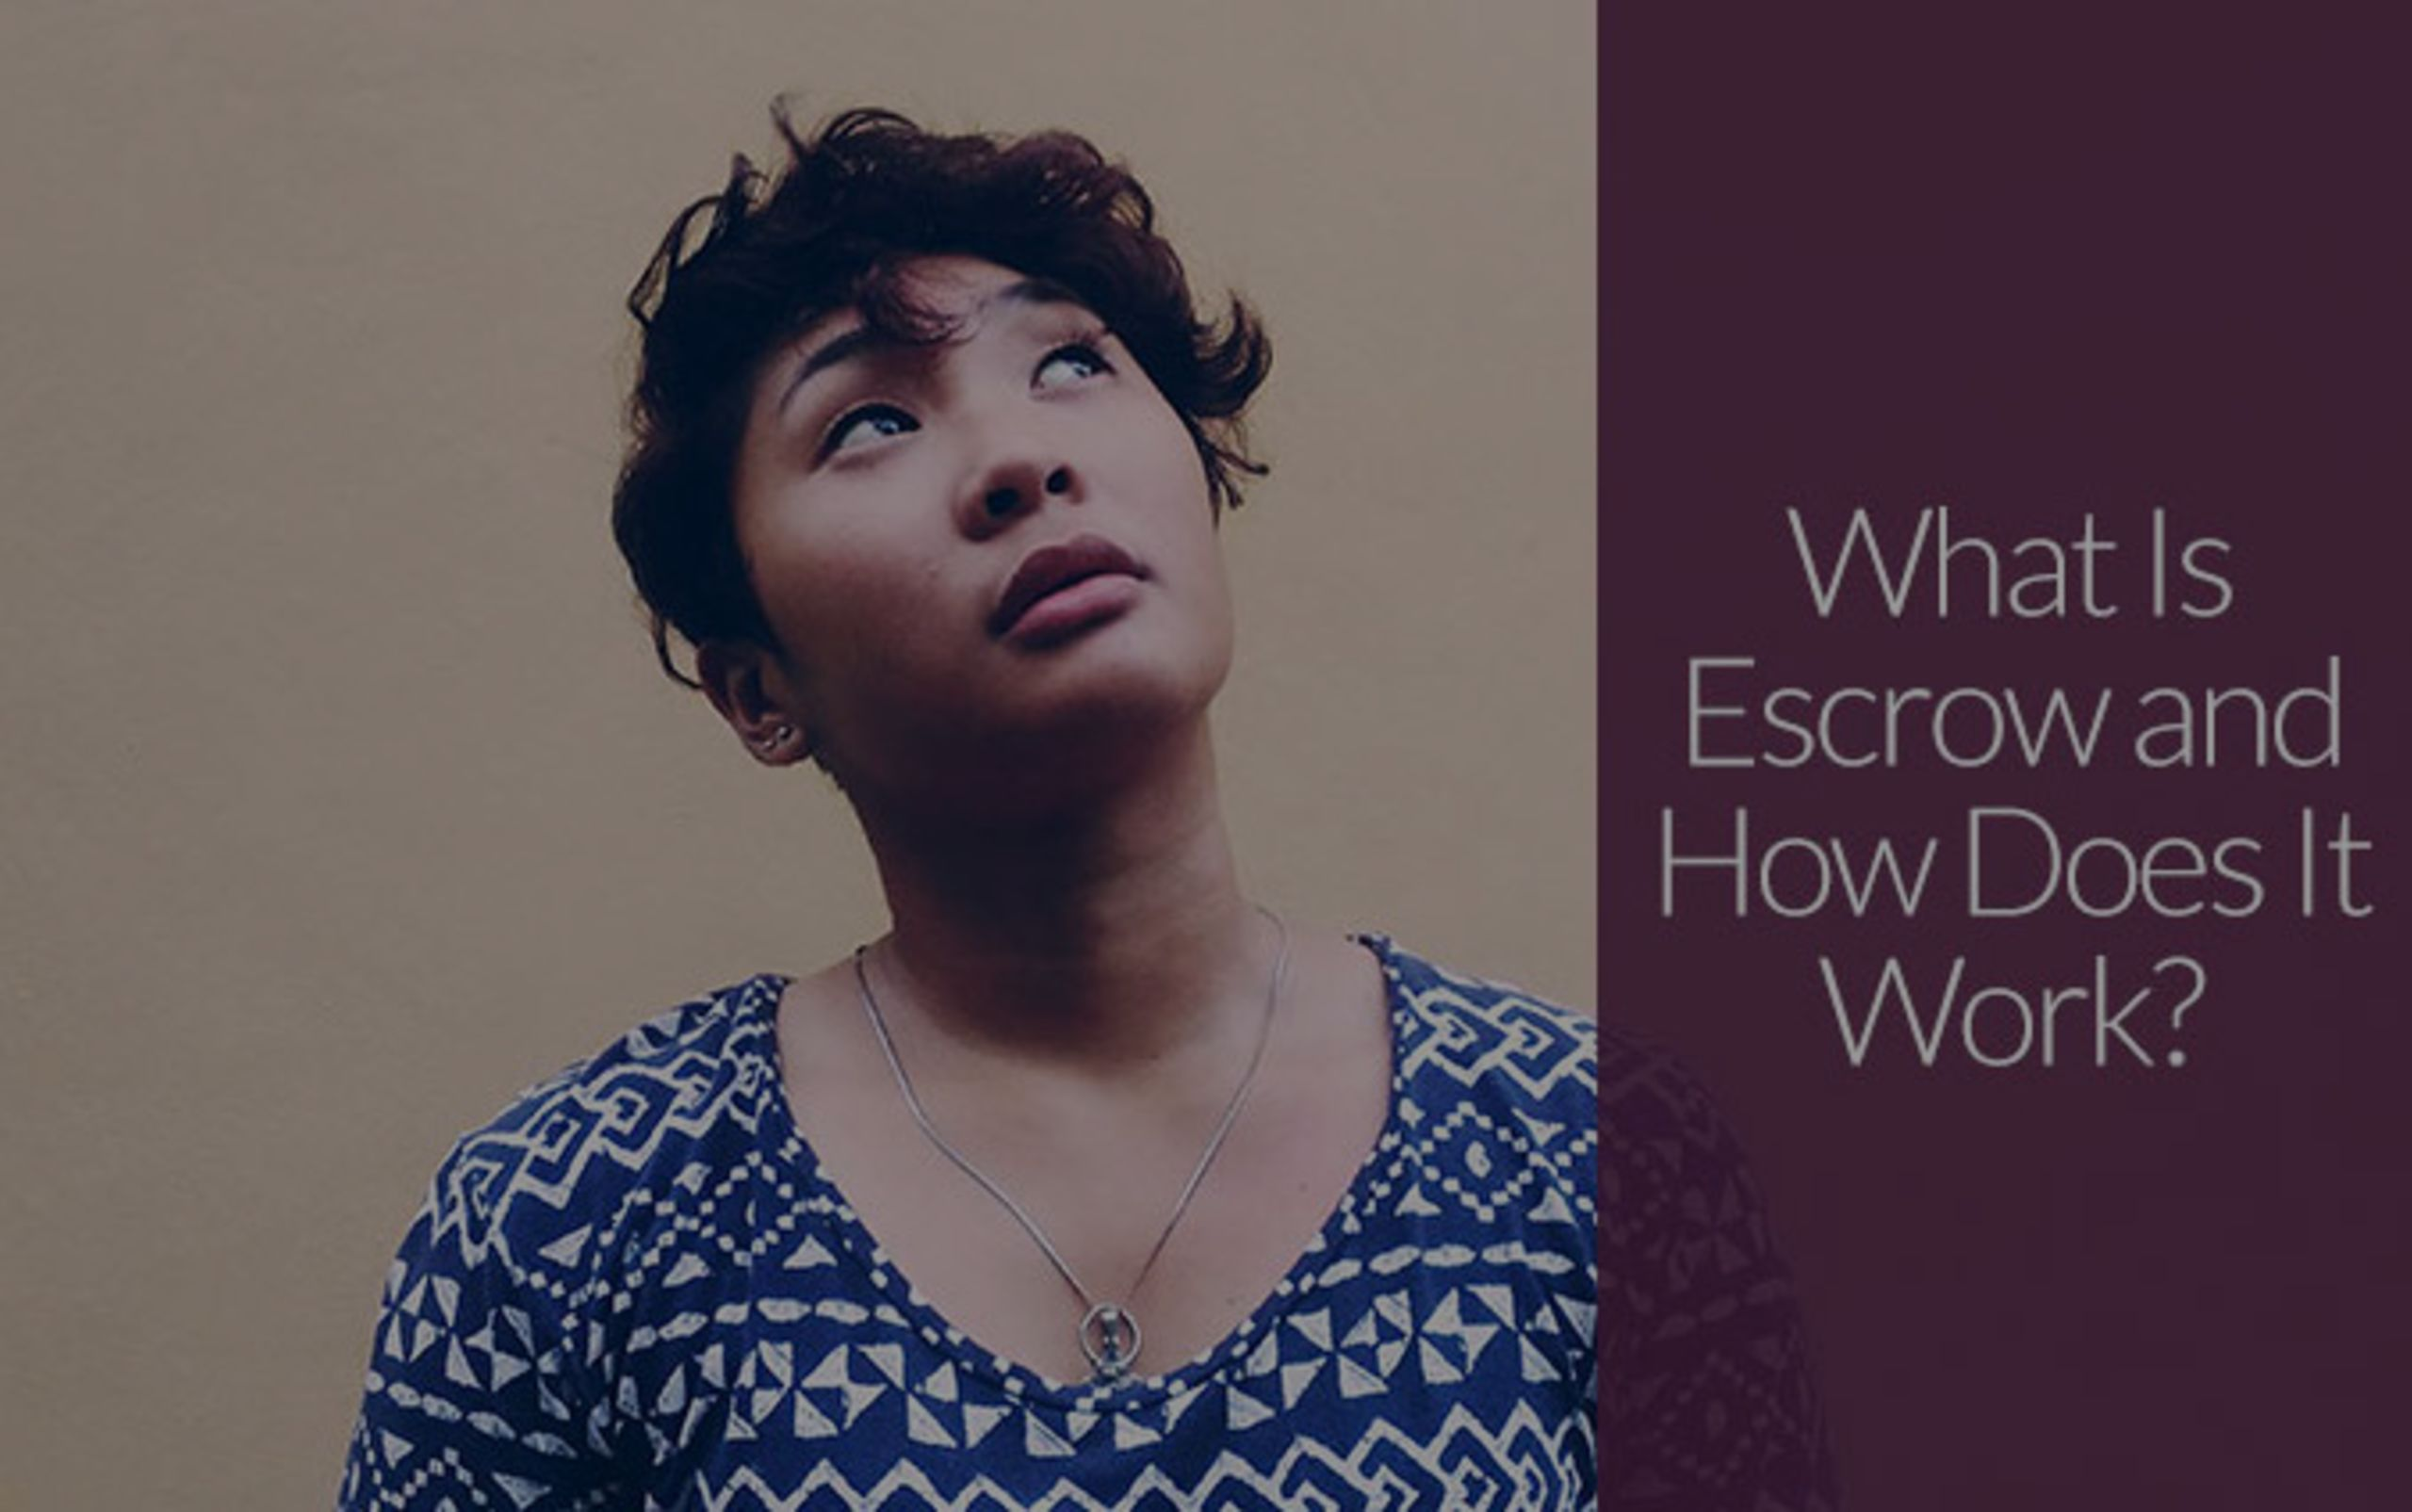 What Is Escrow and How Does It Work?